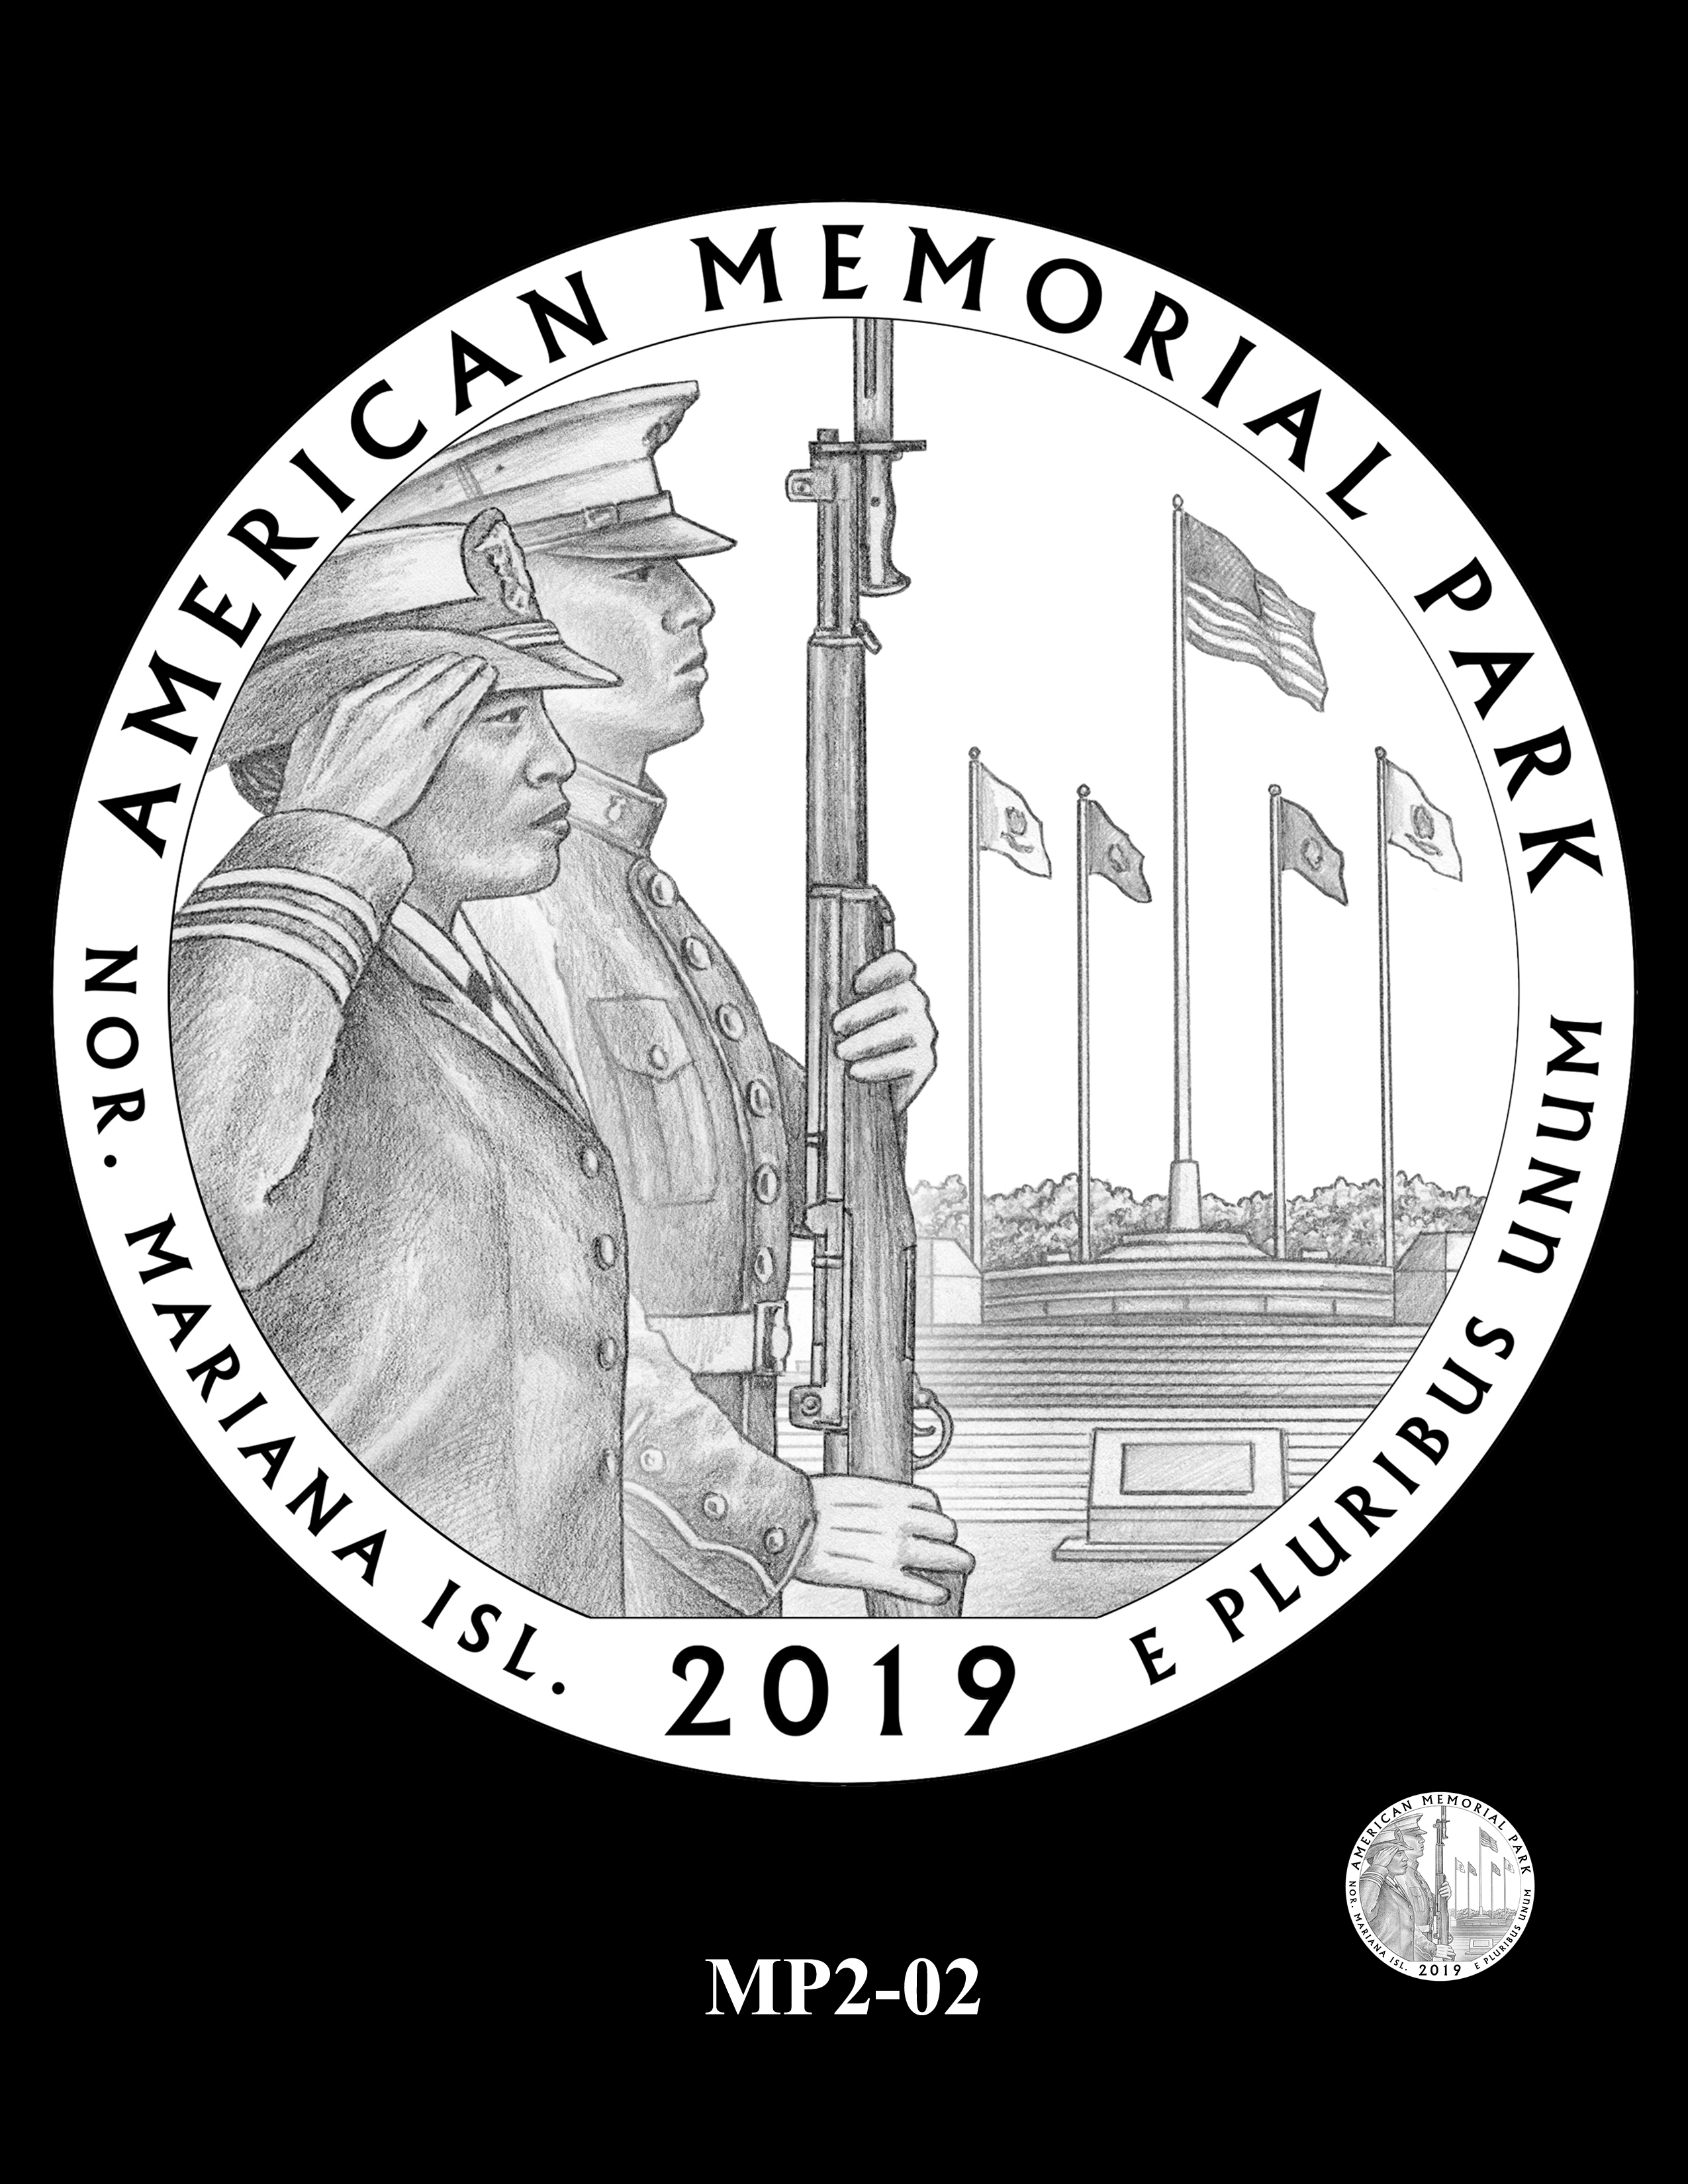 MP2-02 -- 2019 America the Beautiful Quarters® Program